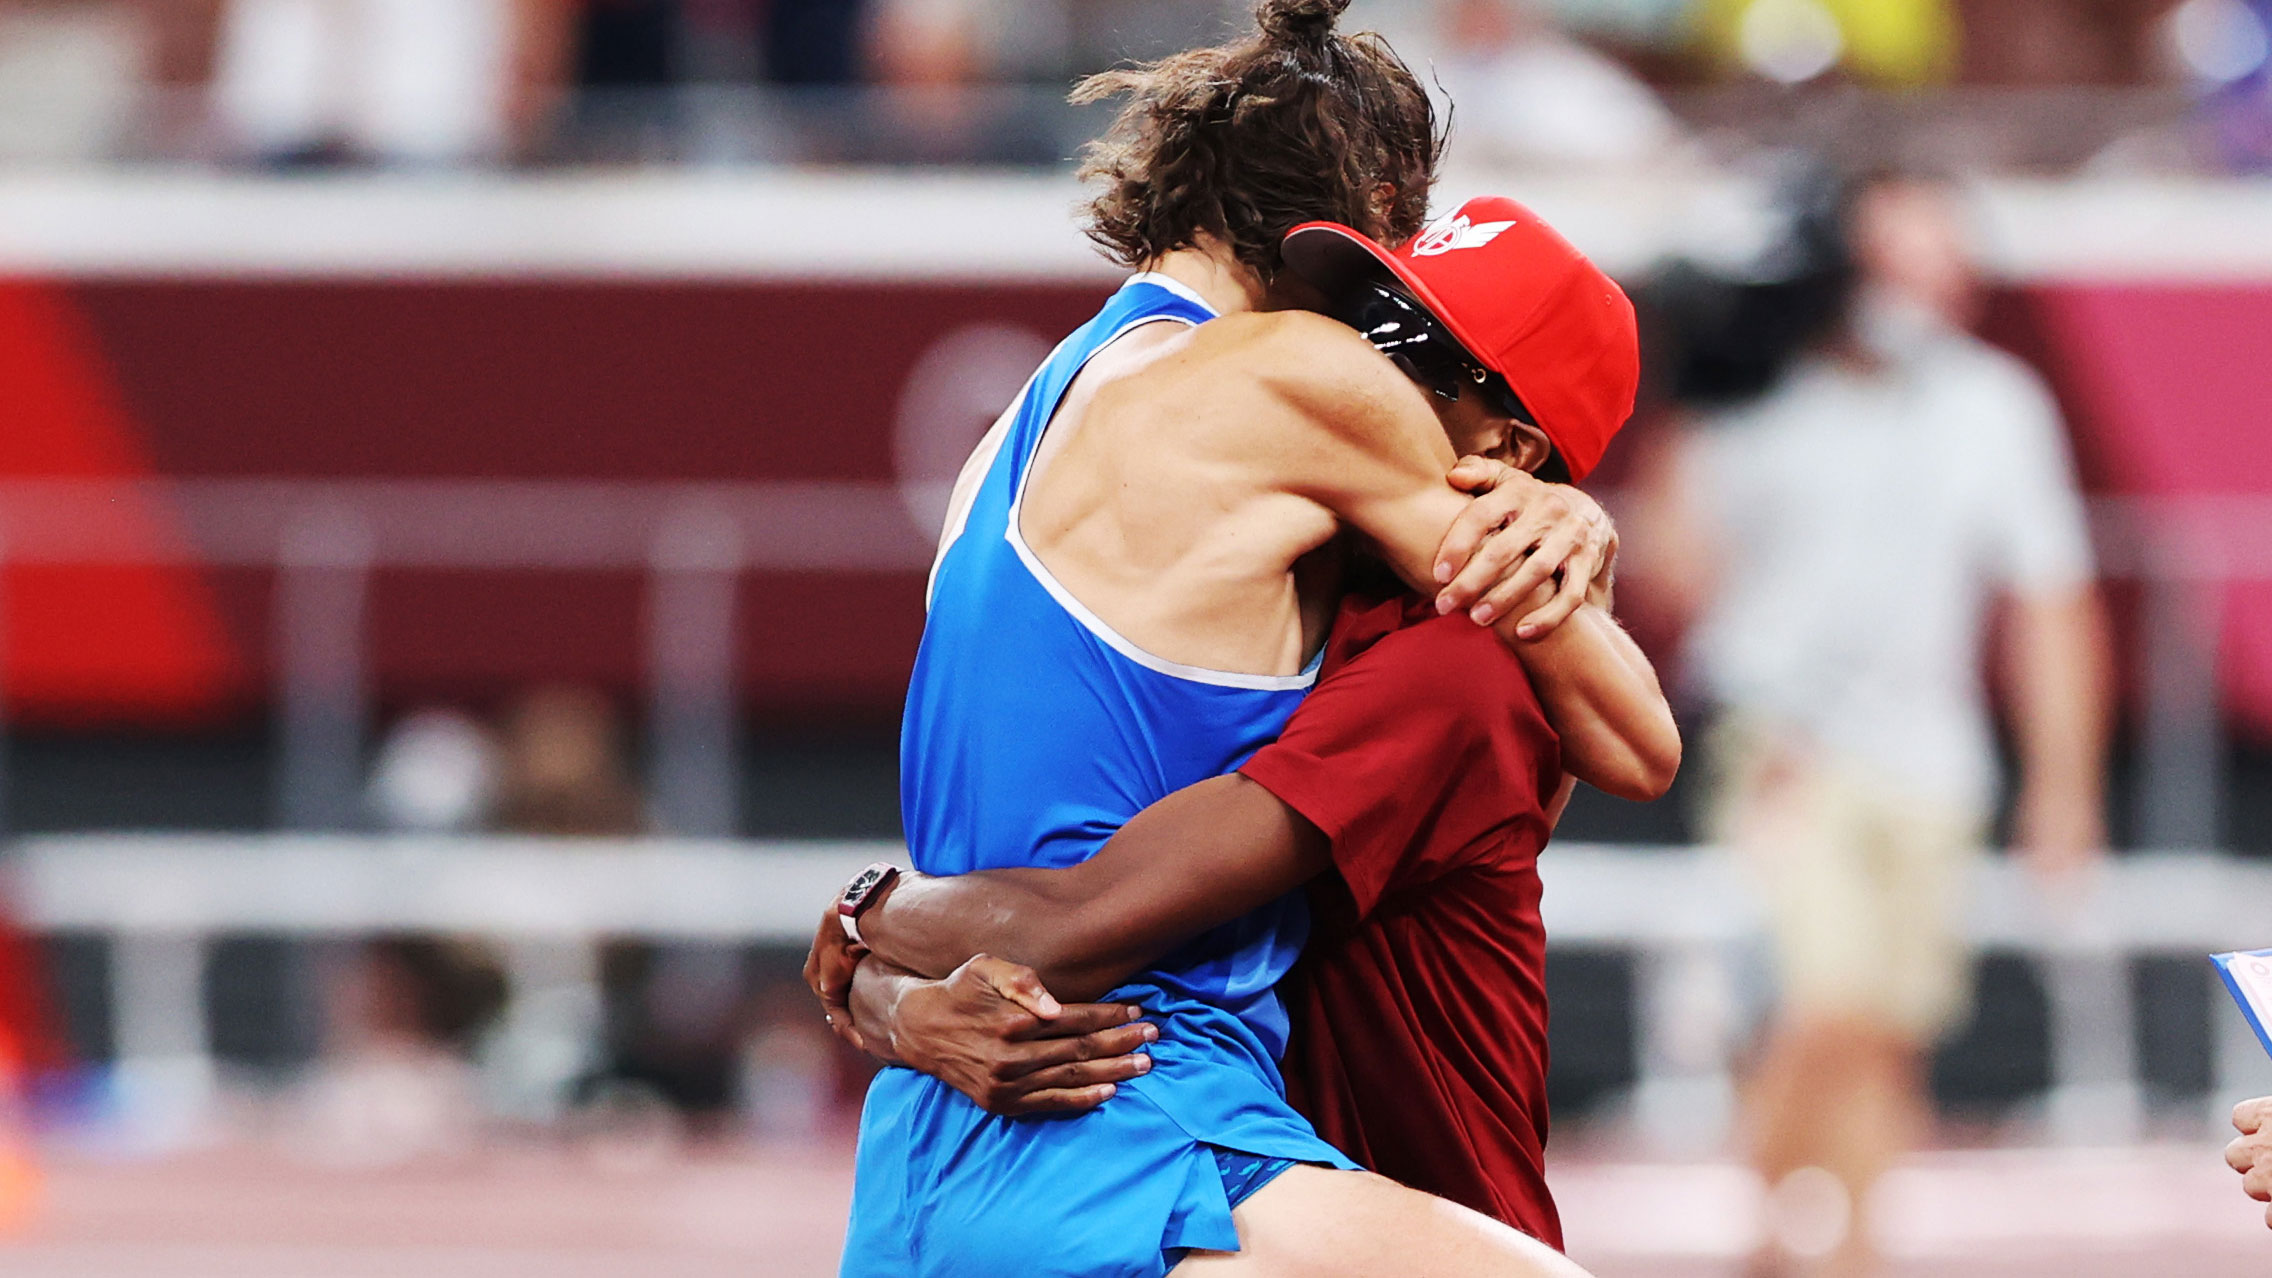 Shared gold medals in high jump response, Mutaz Essa Barshim and Gianmarco  Tamberi | Algulf